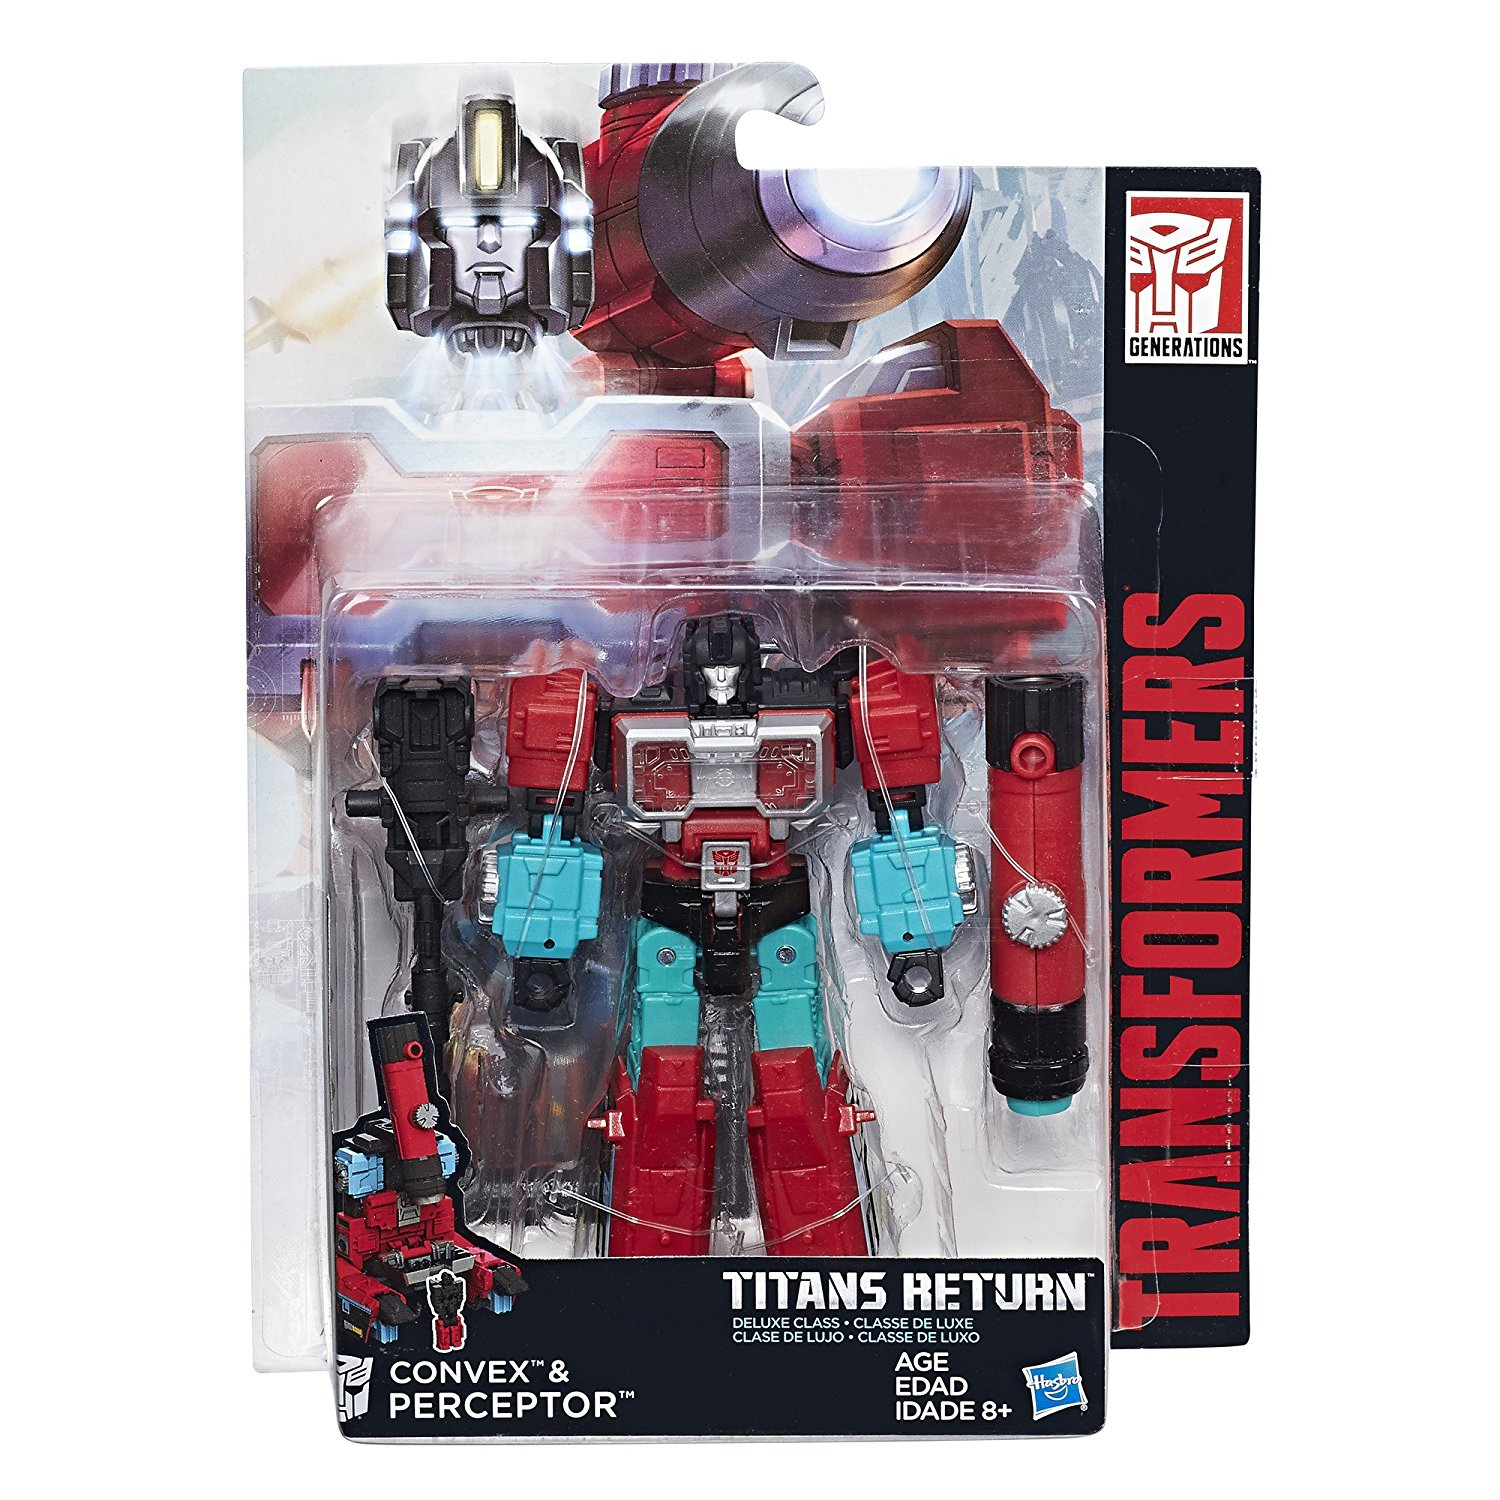 Transformers Generations Titans Return Autobot Perceptor and Convex by TRANSFORMERS